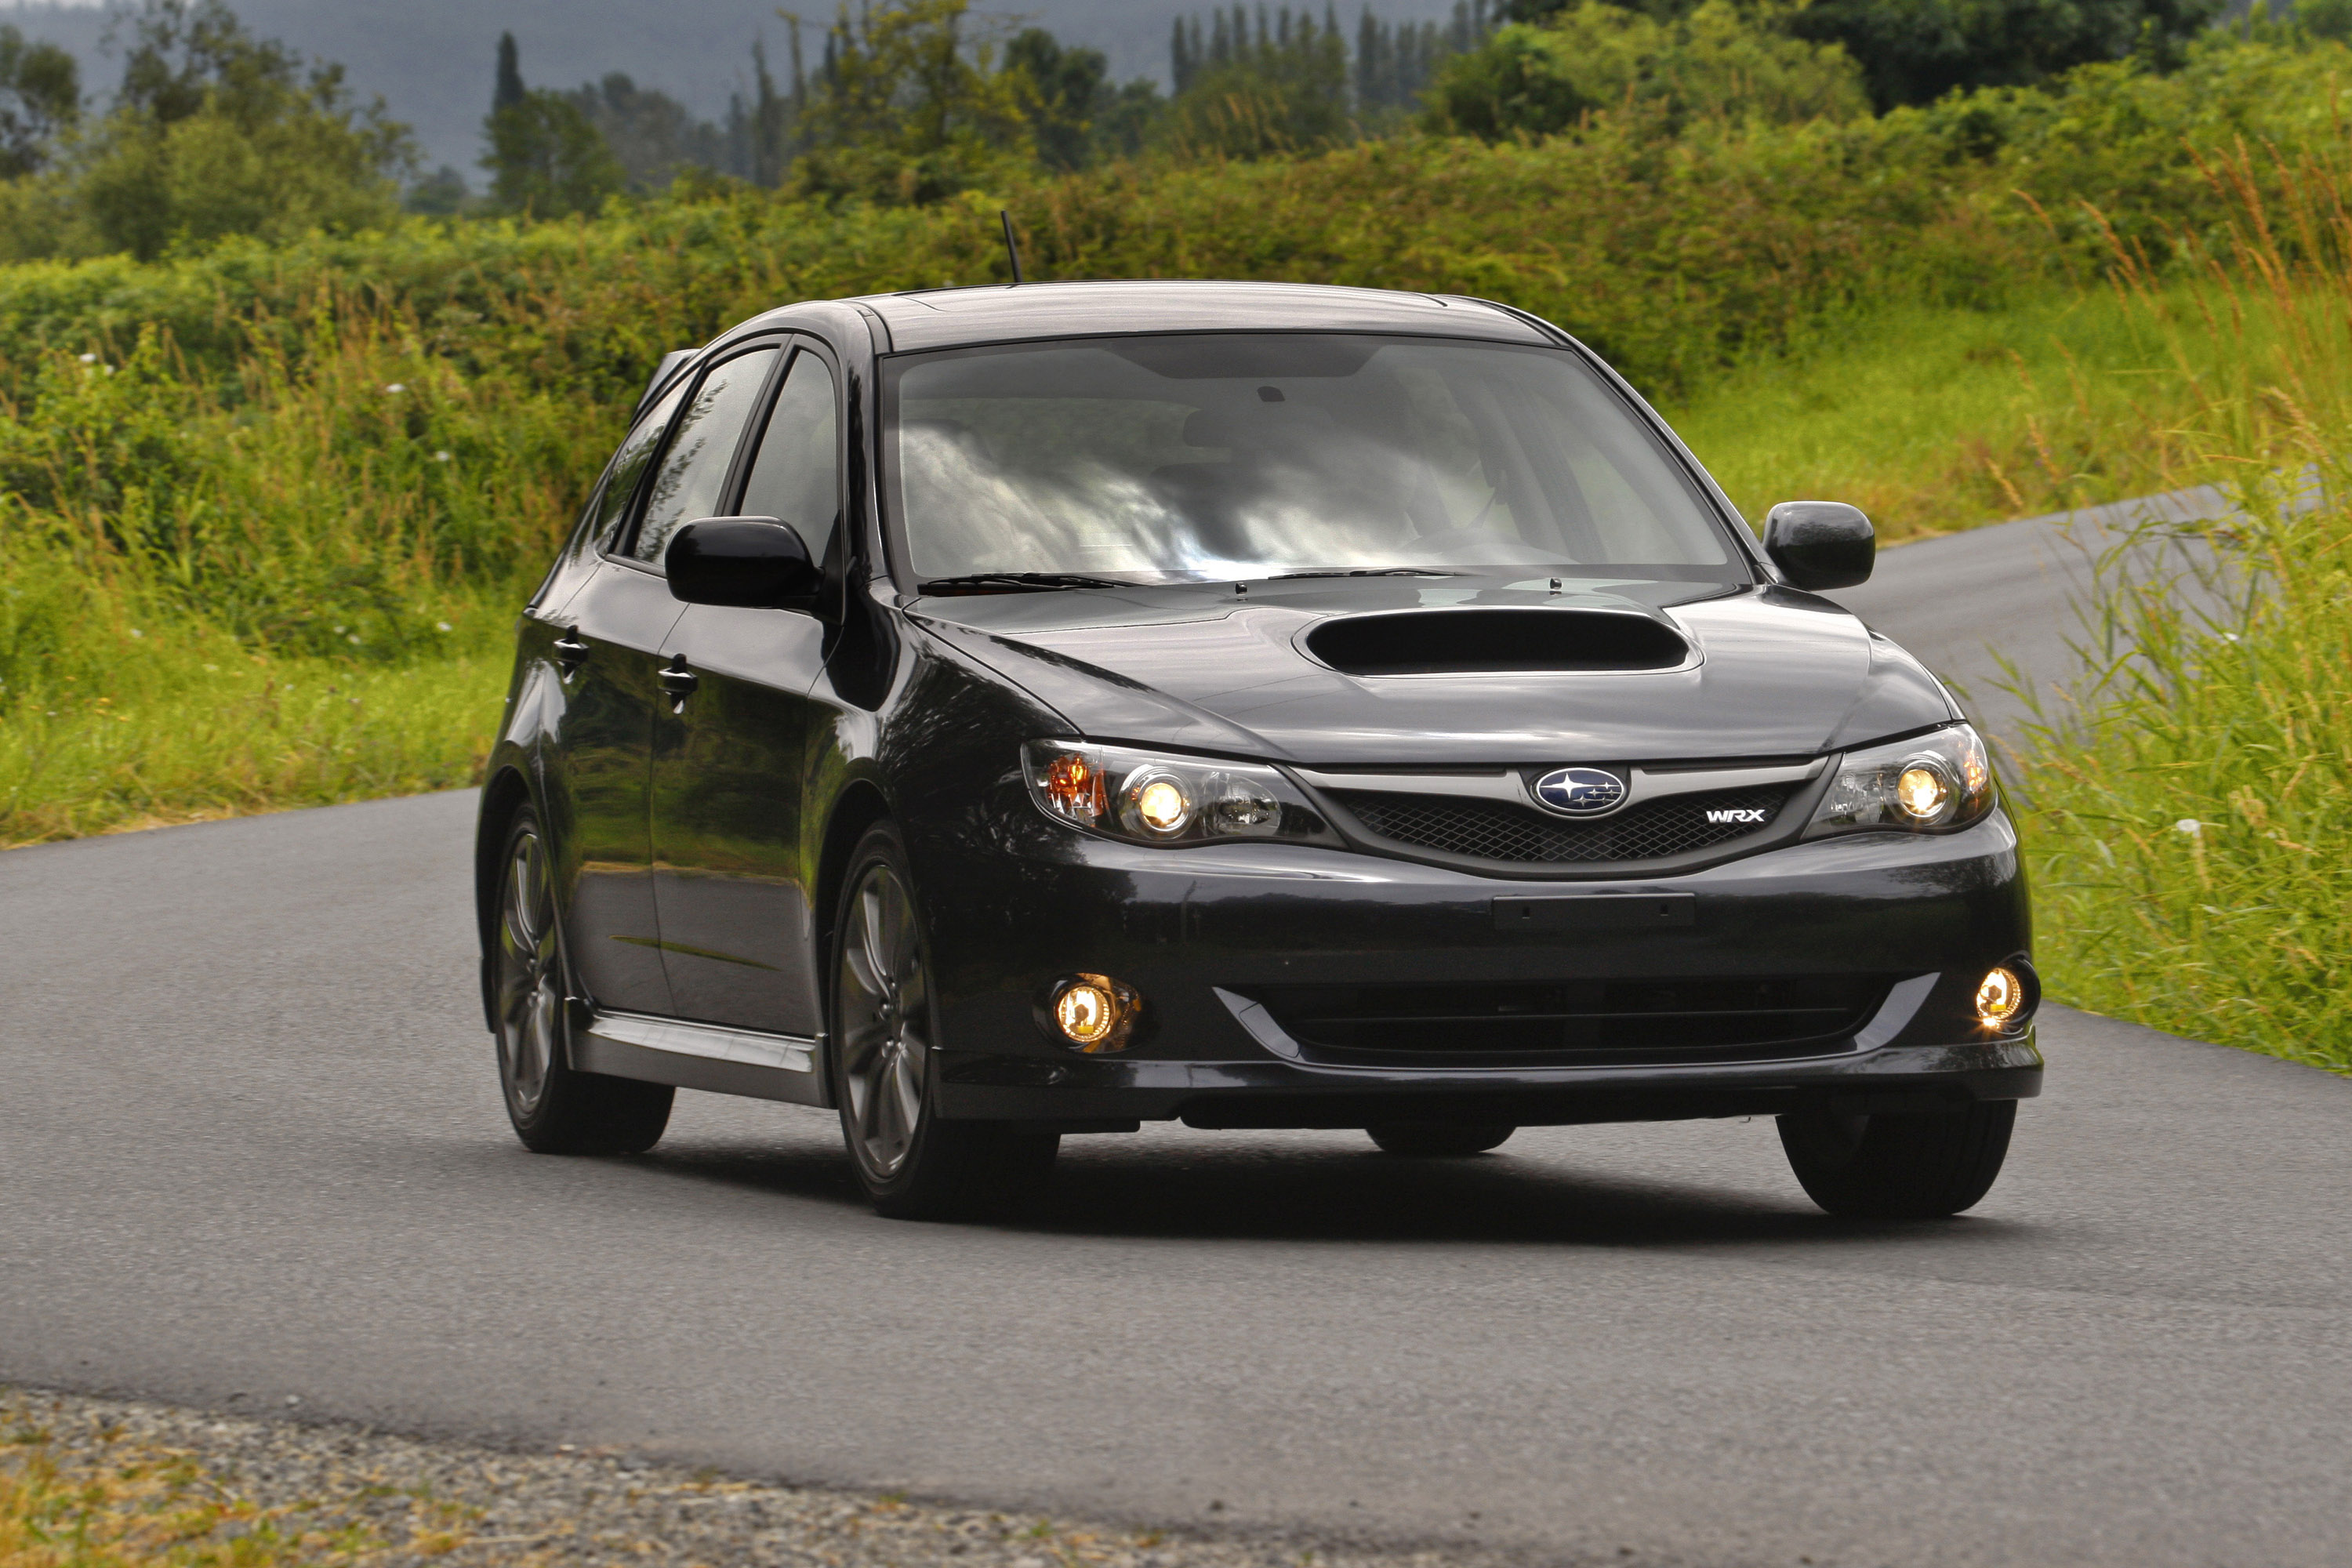 Subaru Announces Pricing On New 2009 Impreza And Tribeca